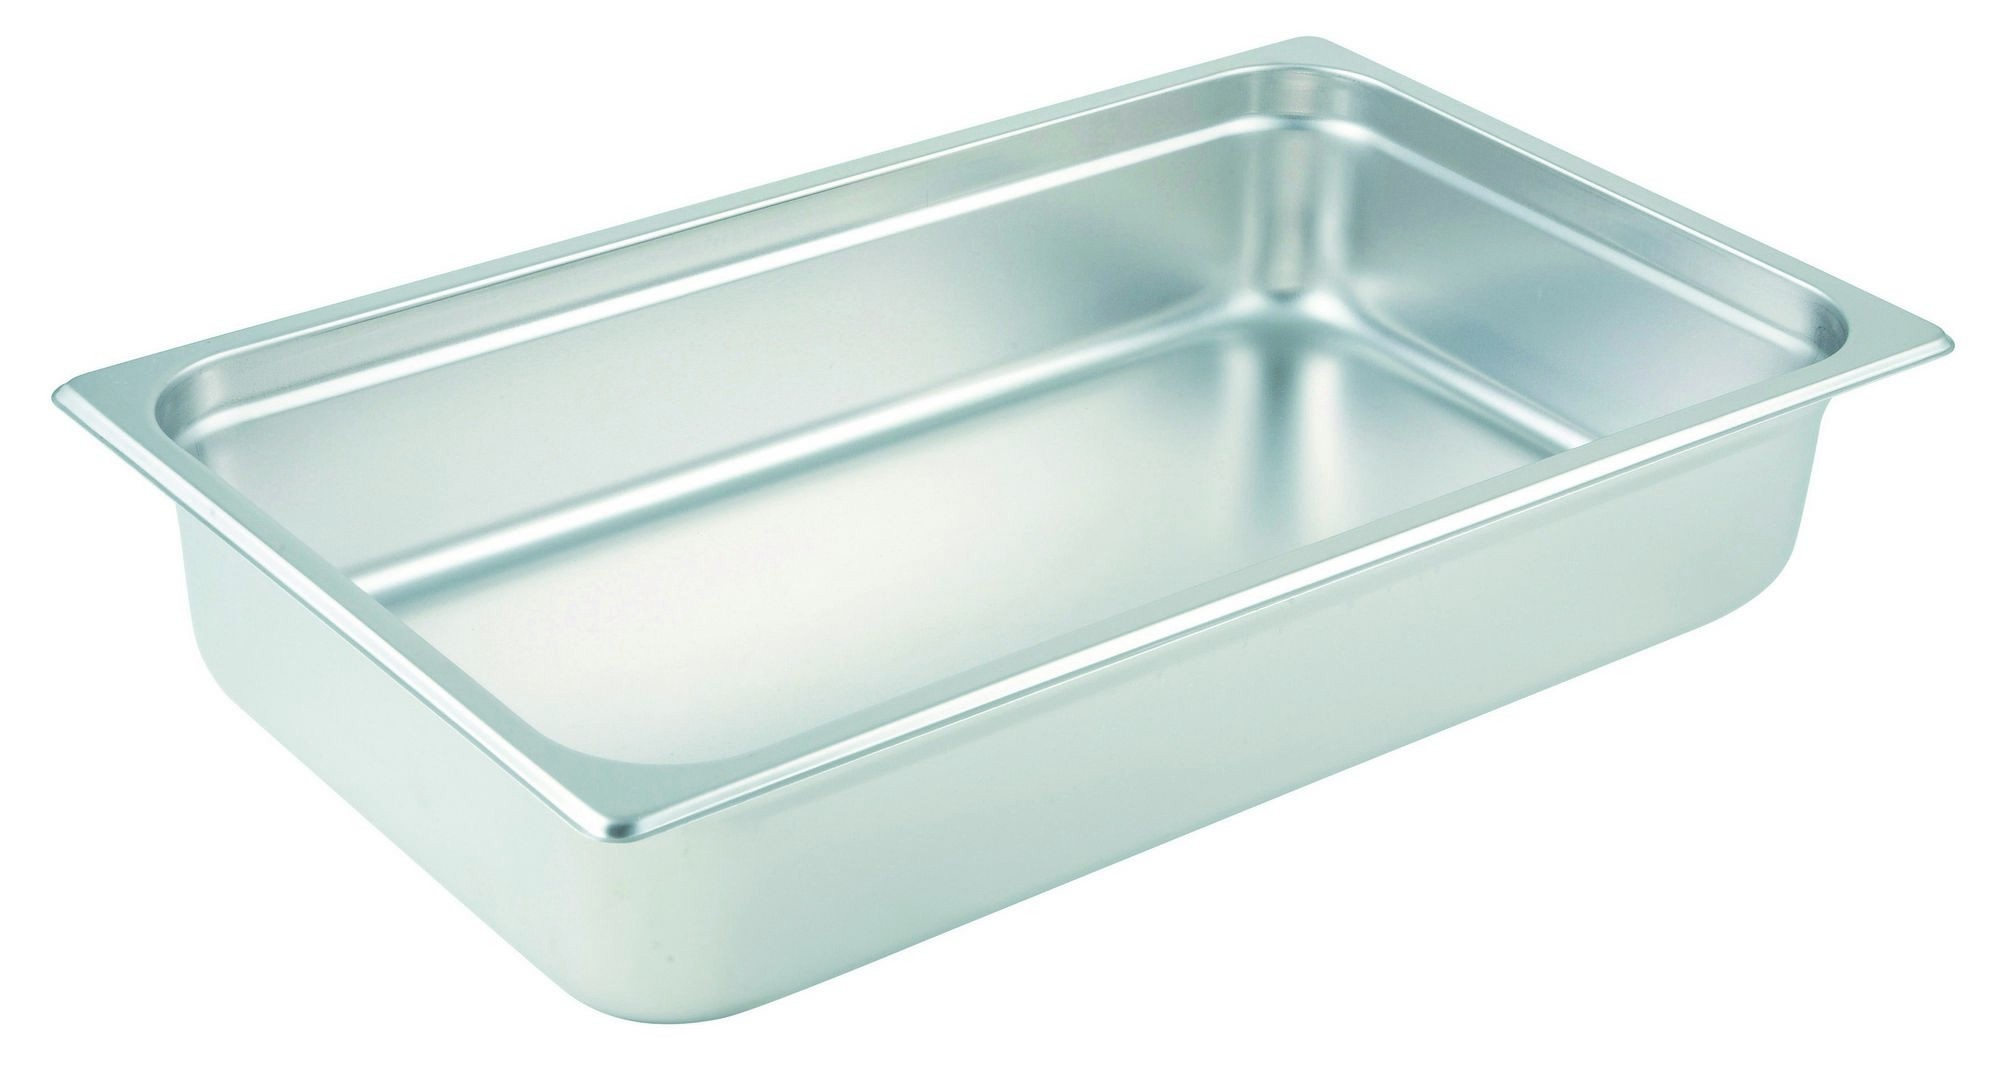 "Winco Spjl-104 Full Size Anti-Jam 25 Gauge Steam Table Pan 4"" Deep"